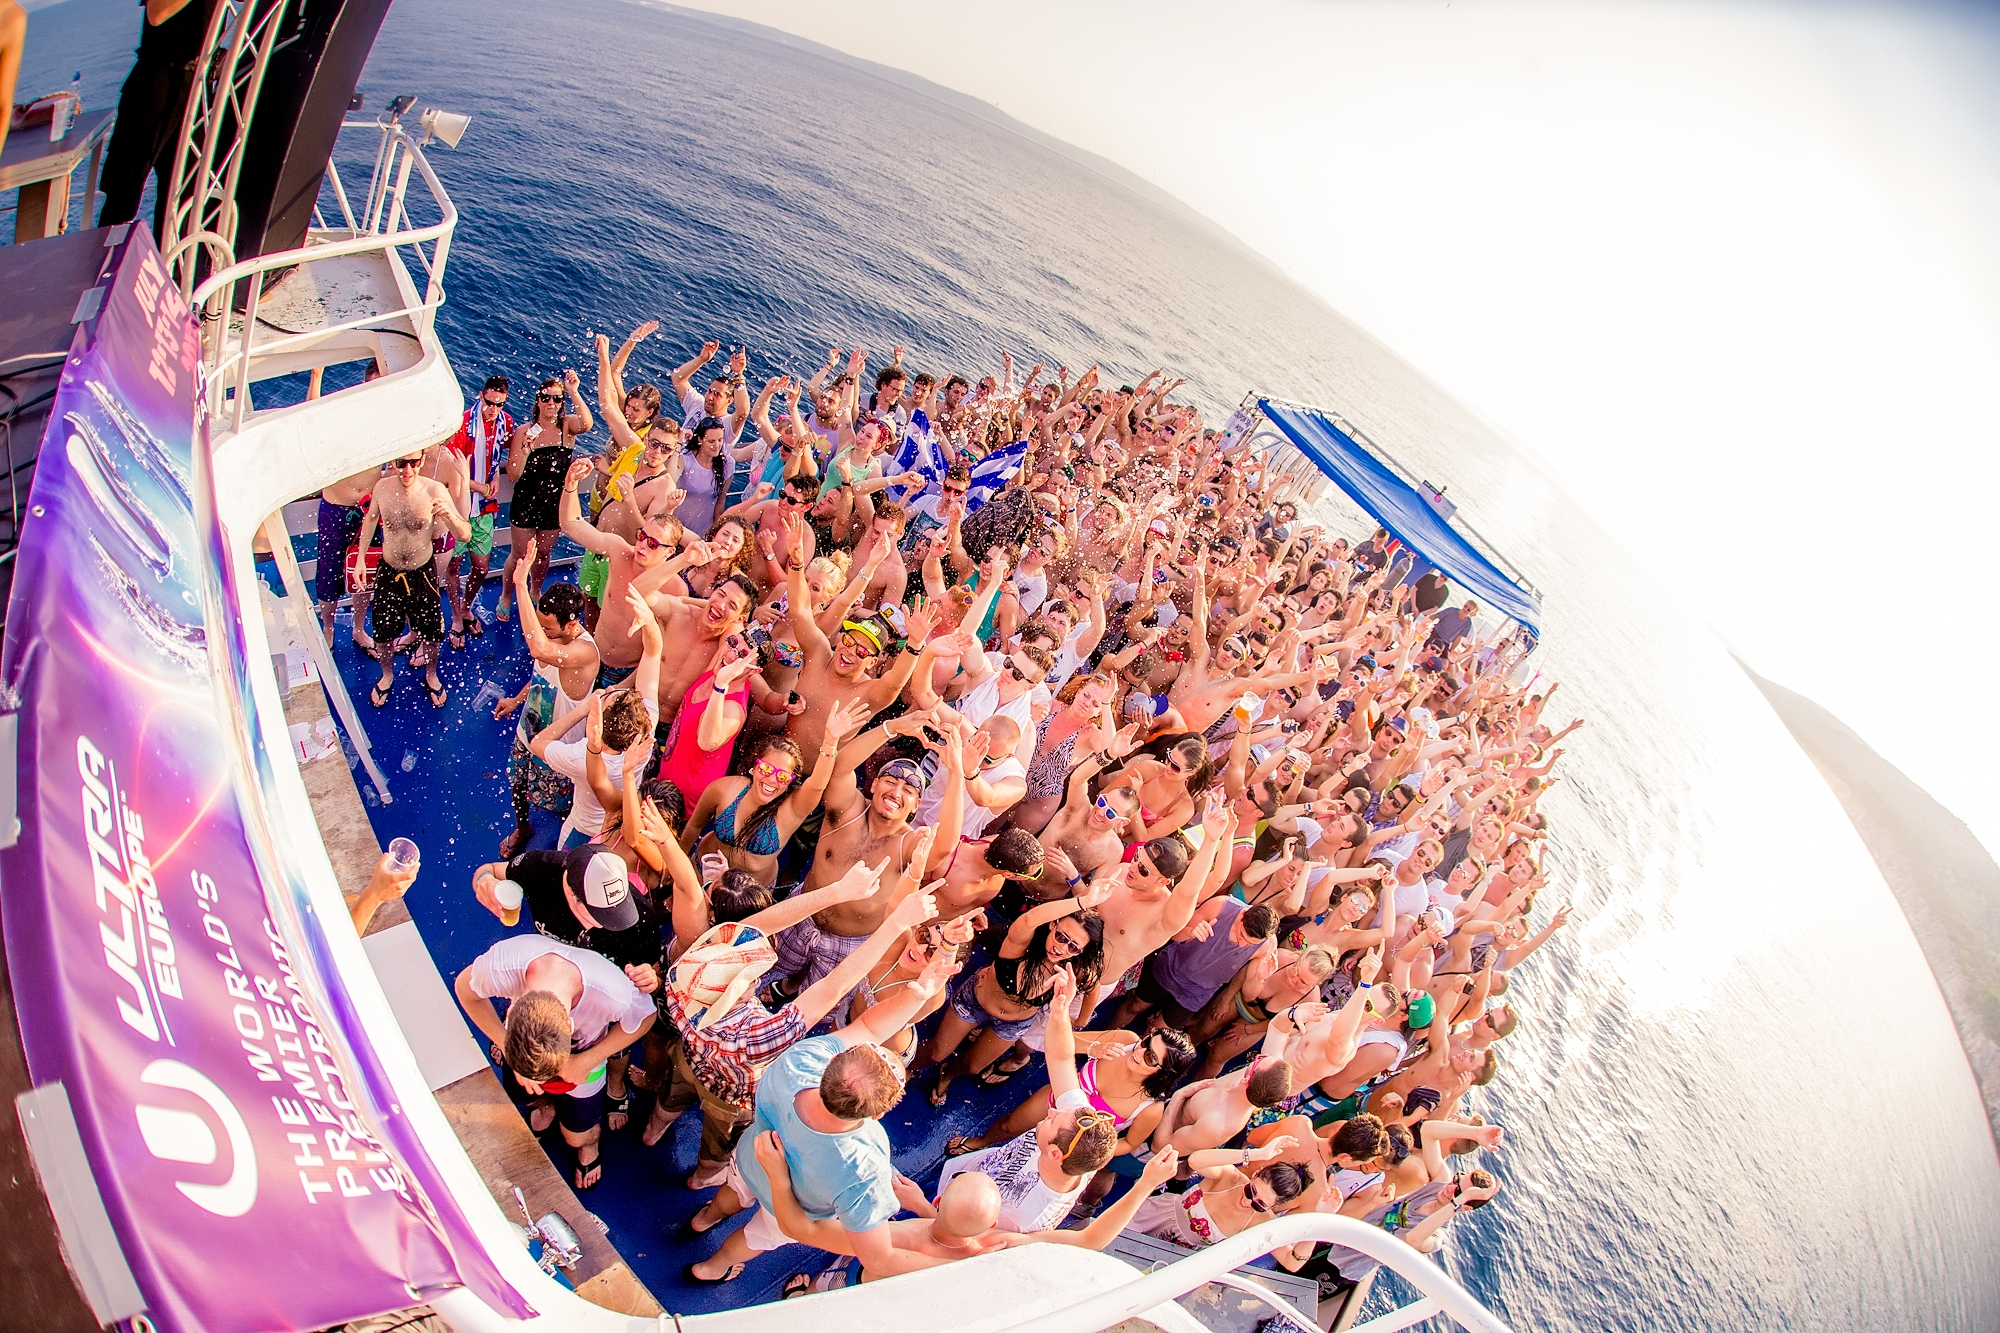 ultra boat party split